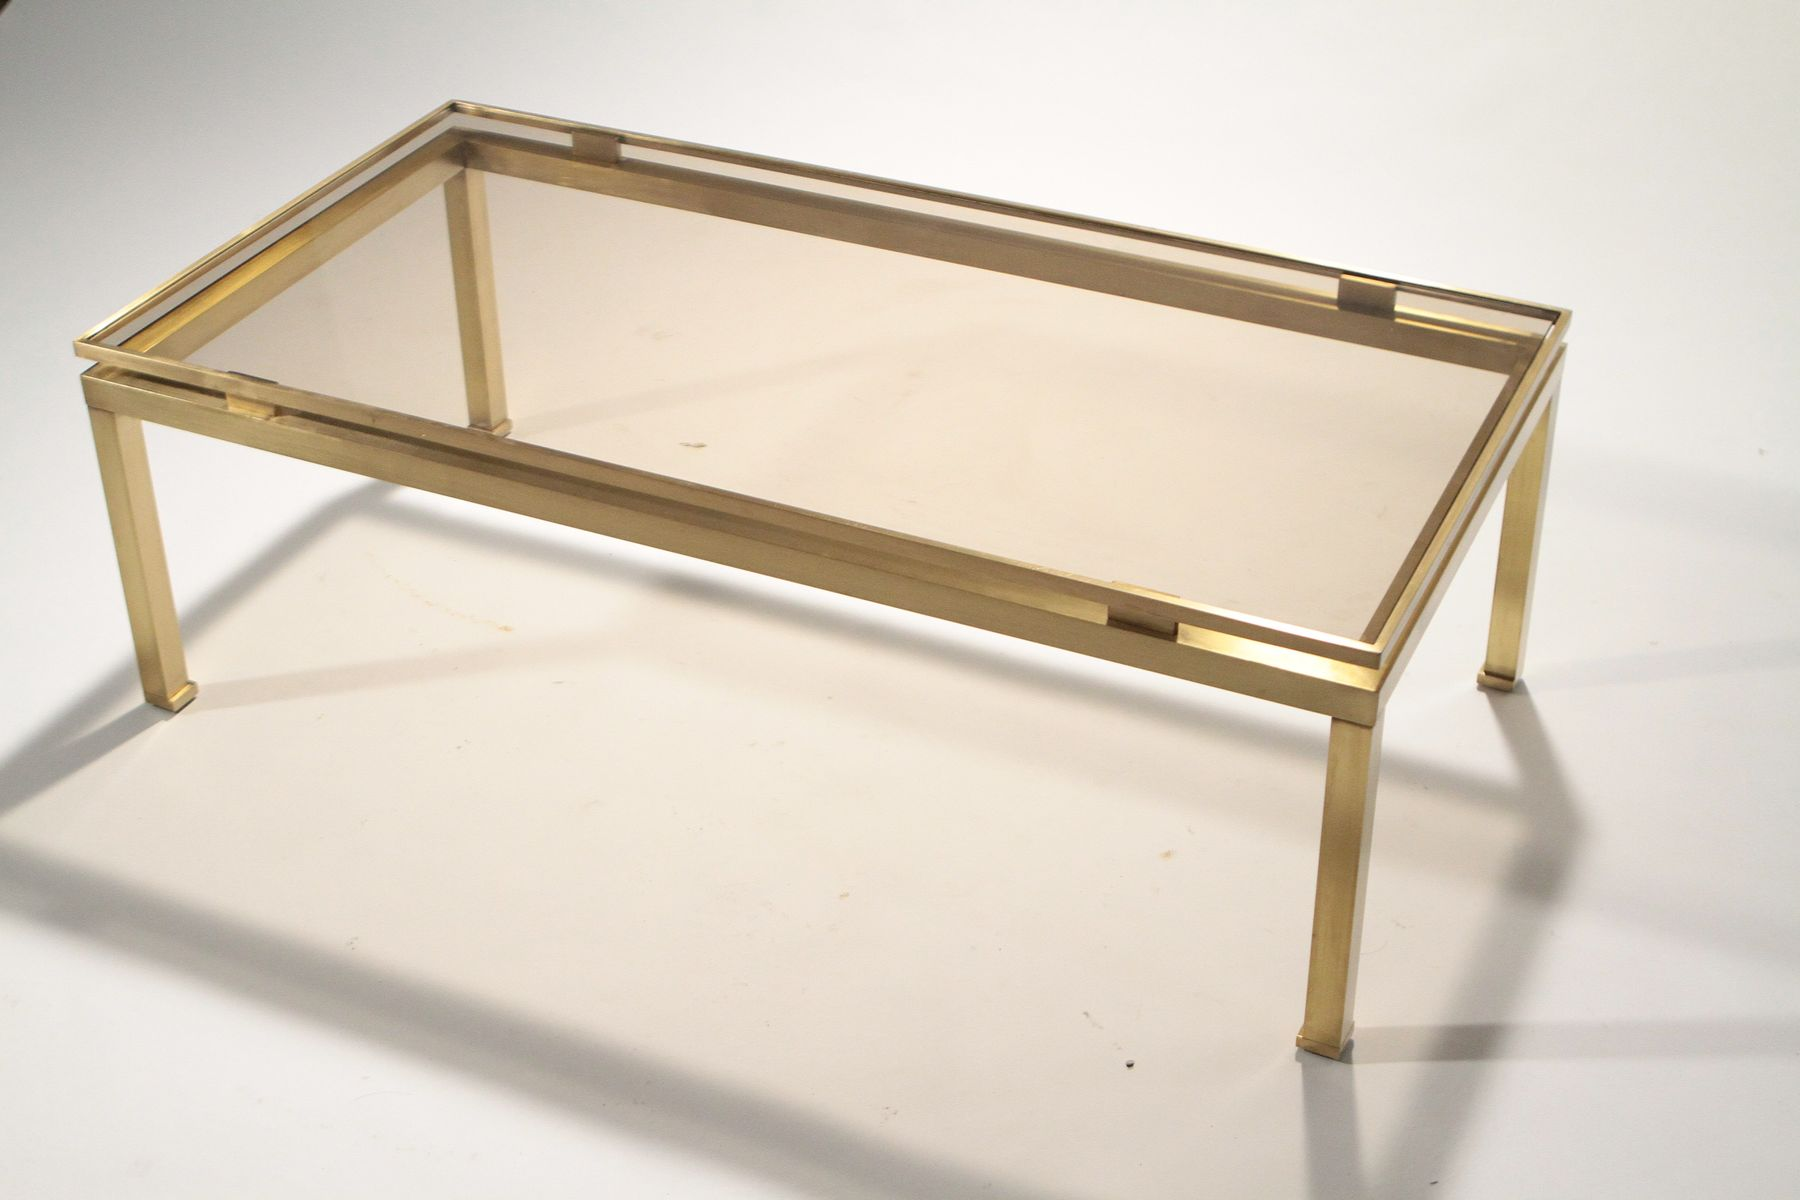 Brass Smoked Glass Coffee Table By Guy Lefevre For Maison Jansen 1970s